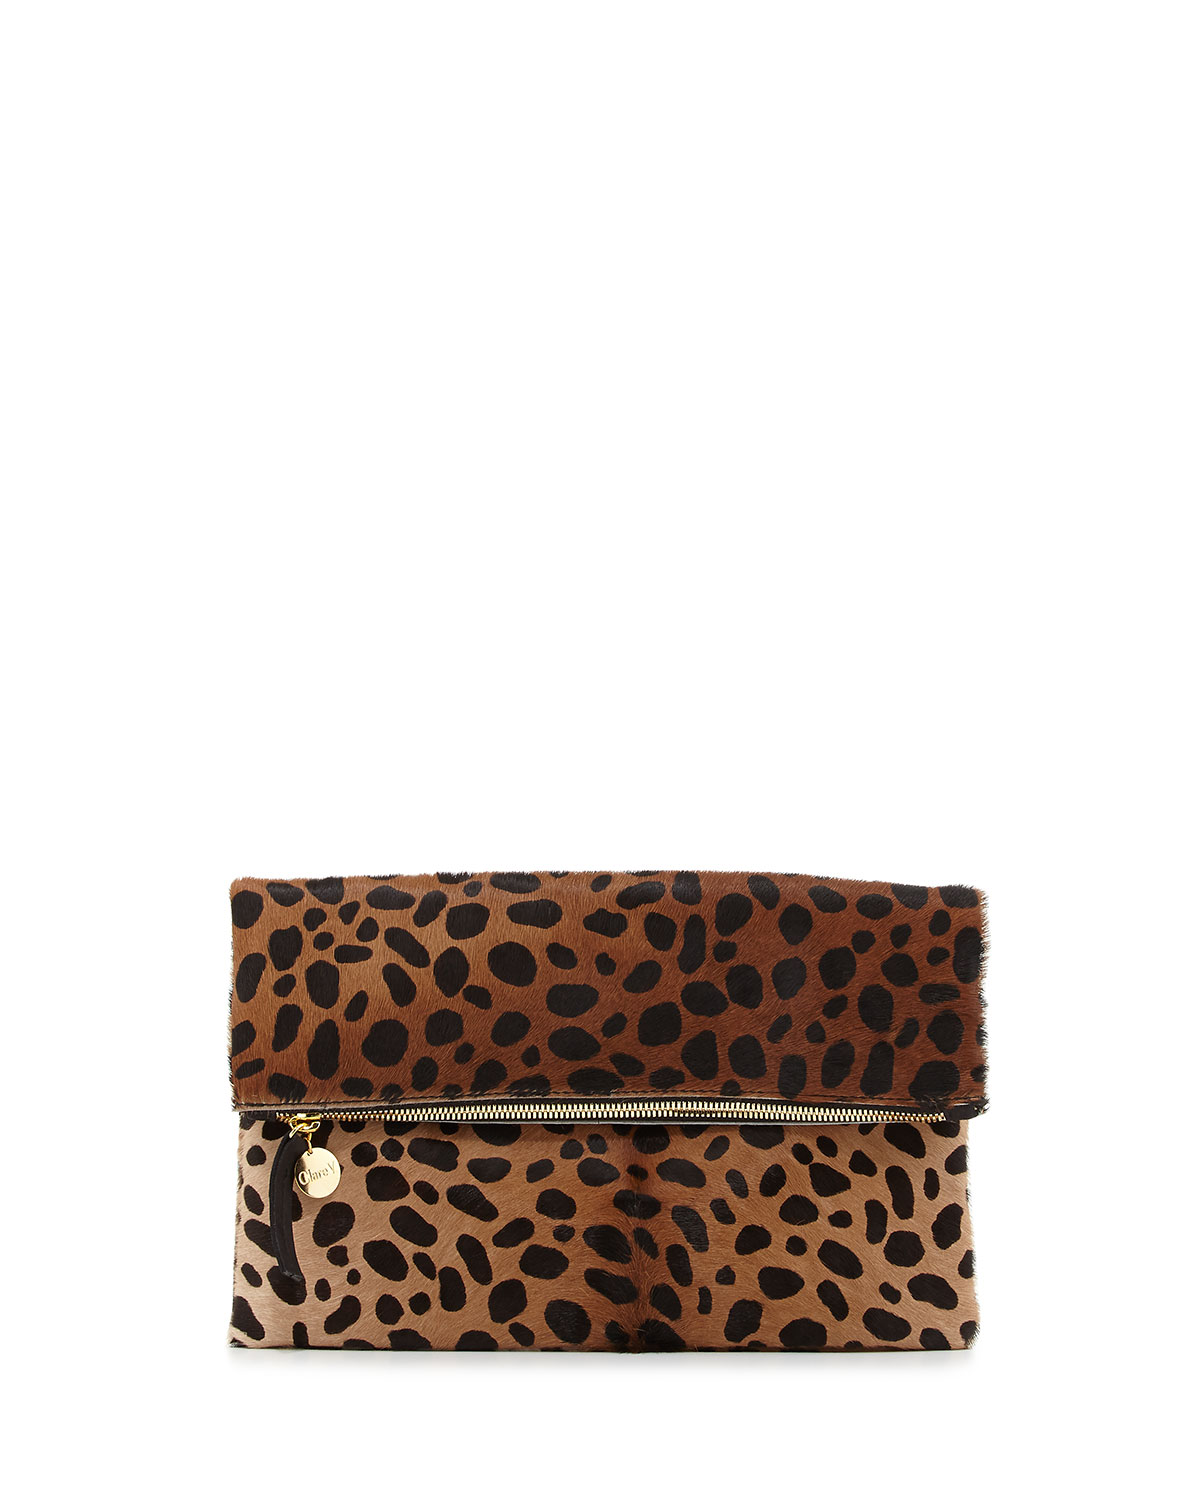 Clare V. Leopard-Print Fold-Over Clutch Bag, Leopard